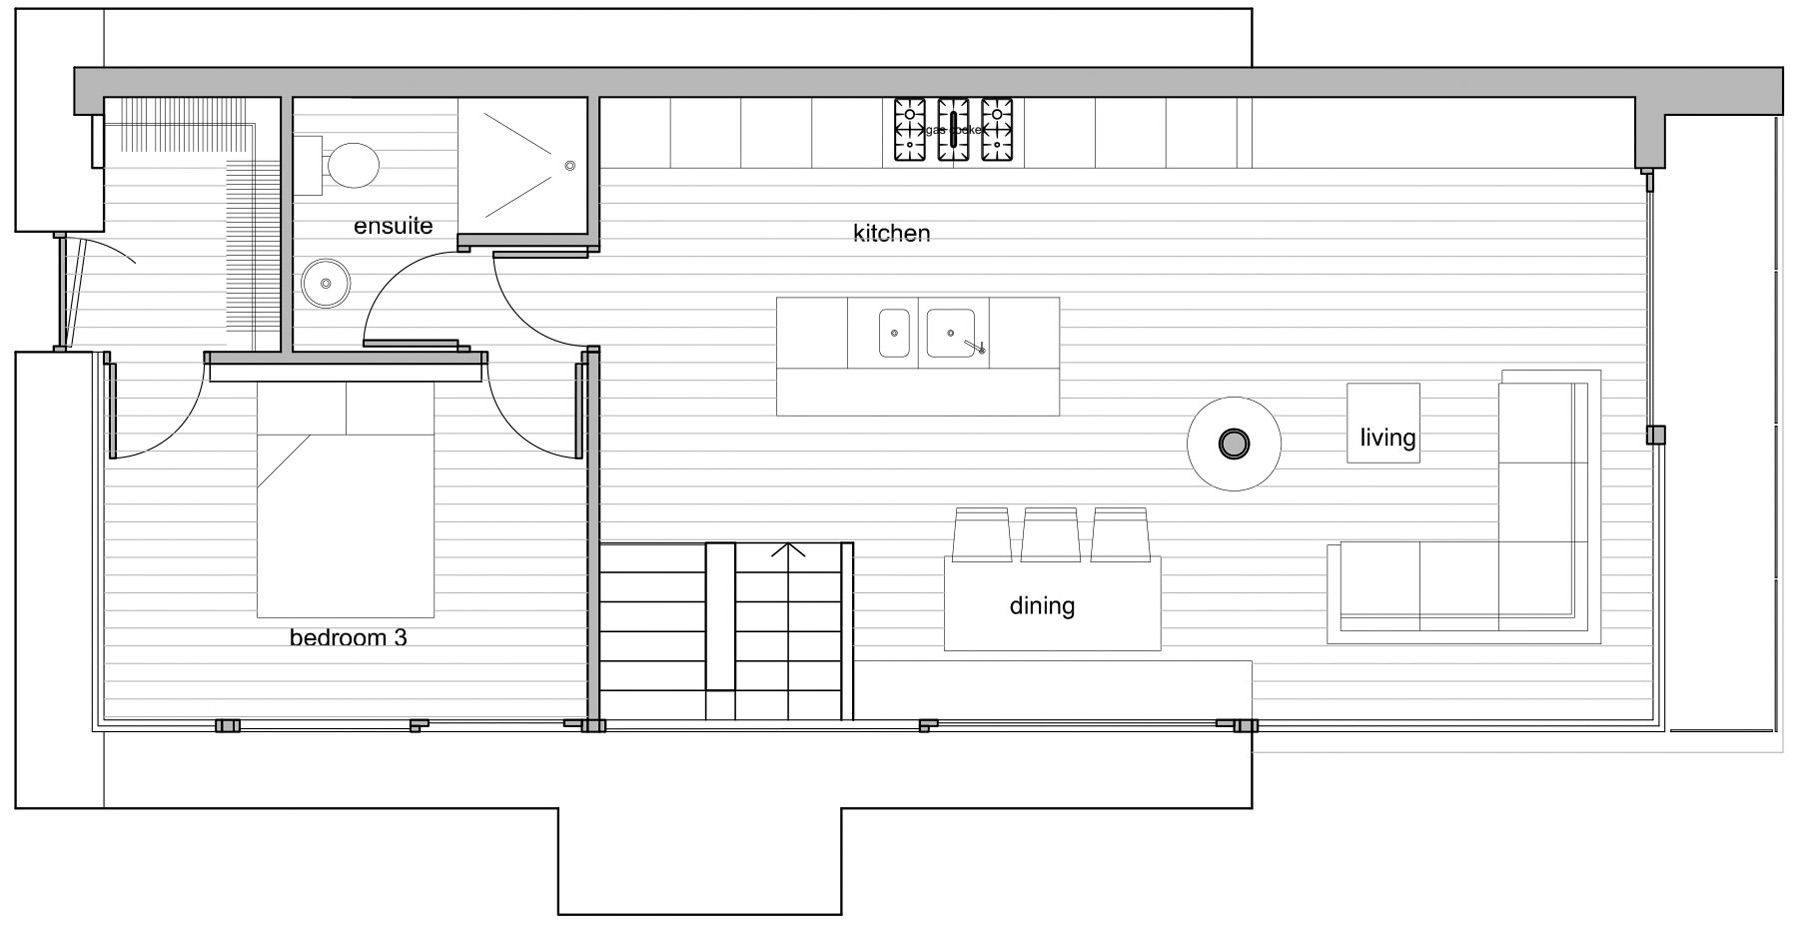 Ground Floor Plan, Barn Conversion in Broughshane, Northern Ireland